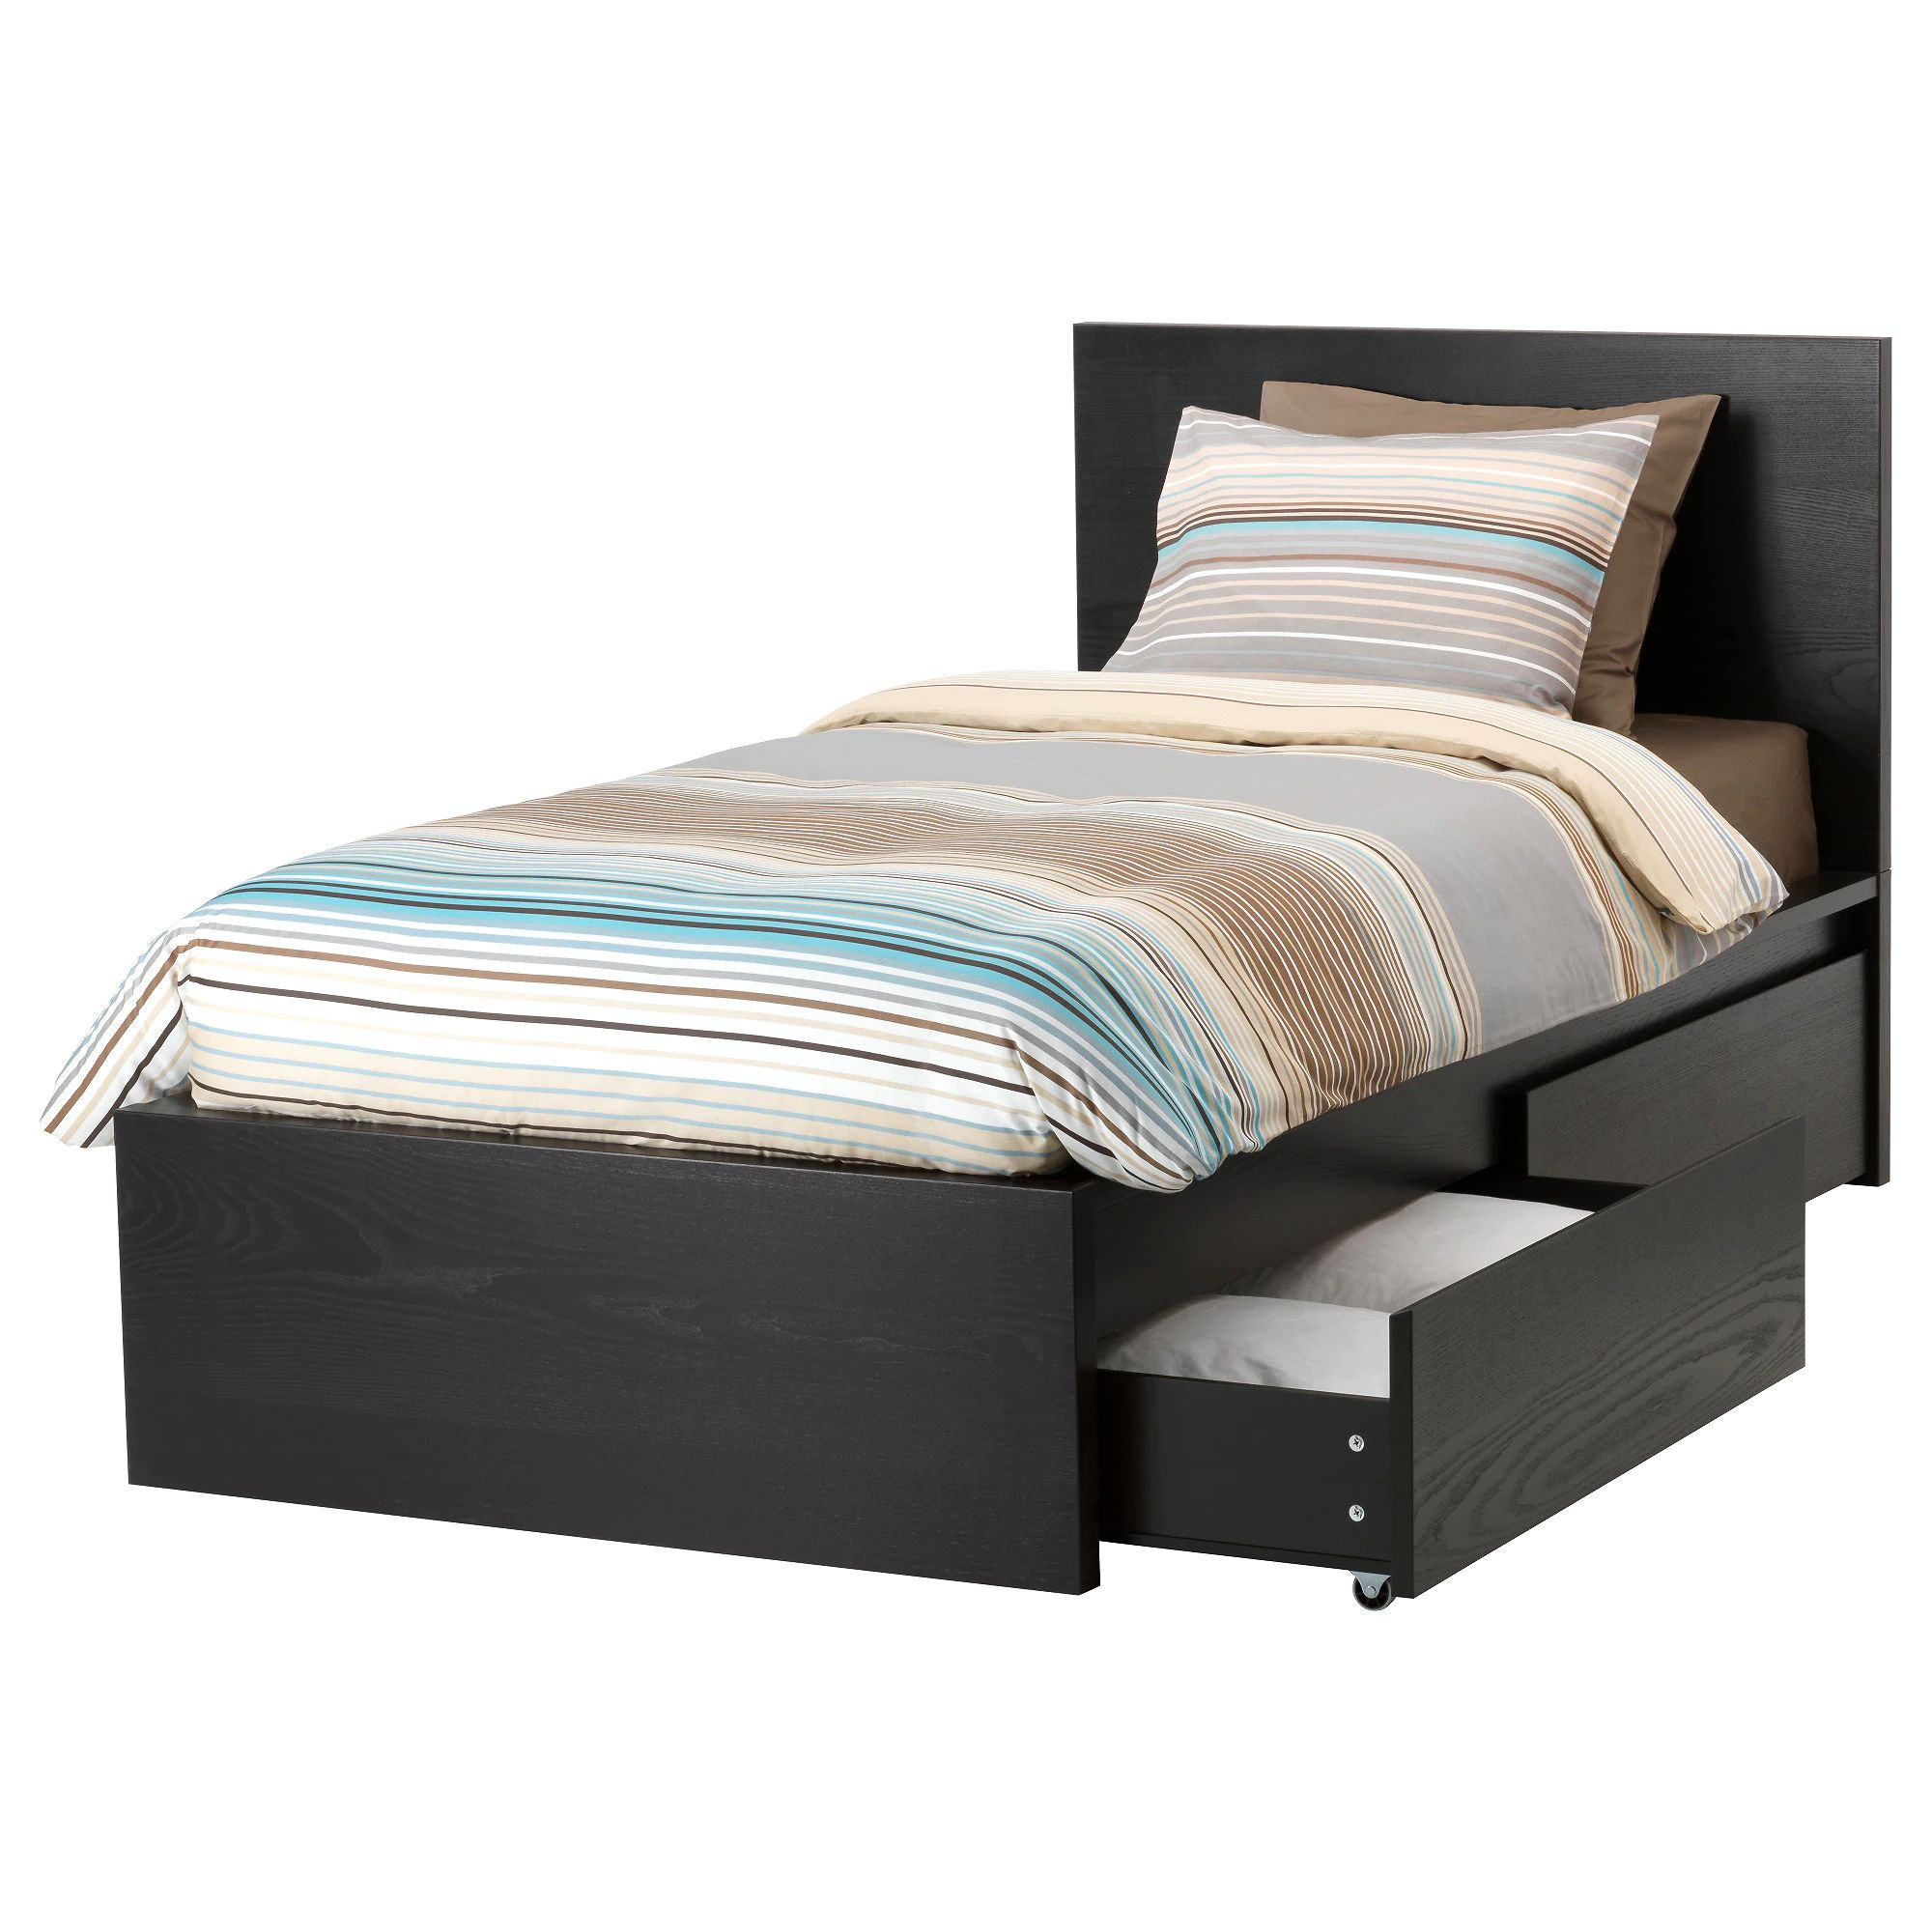 Malm high bed frame 2 storage boxes black brown lur y height of